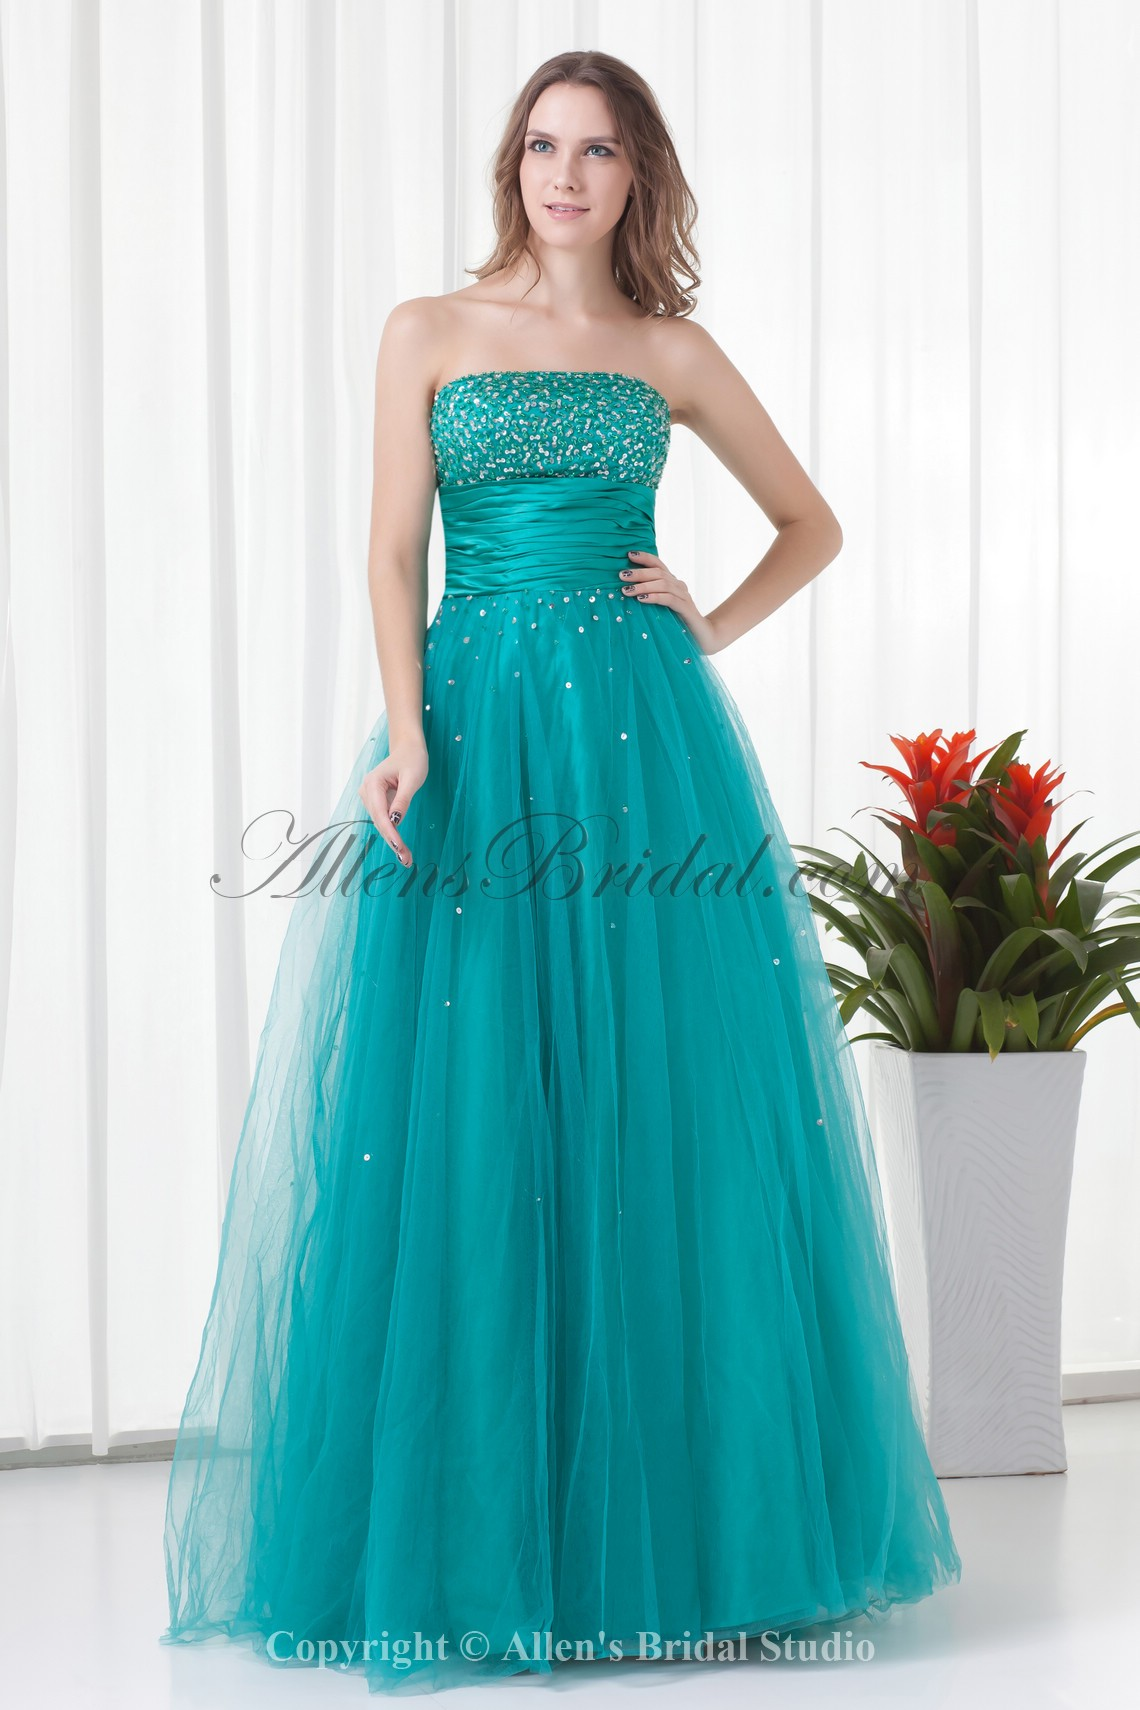 /323-2579/satin-and-net-strapless-a-line-floor-length-sequins-prom-dress.jpg